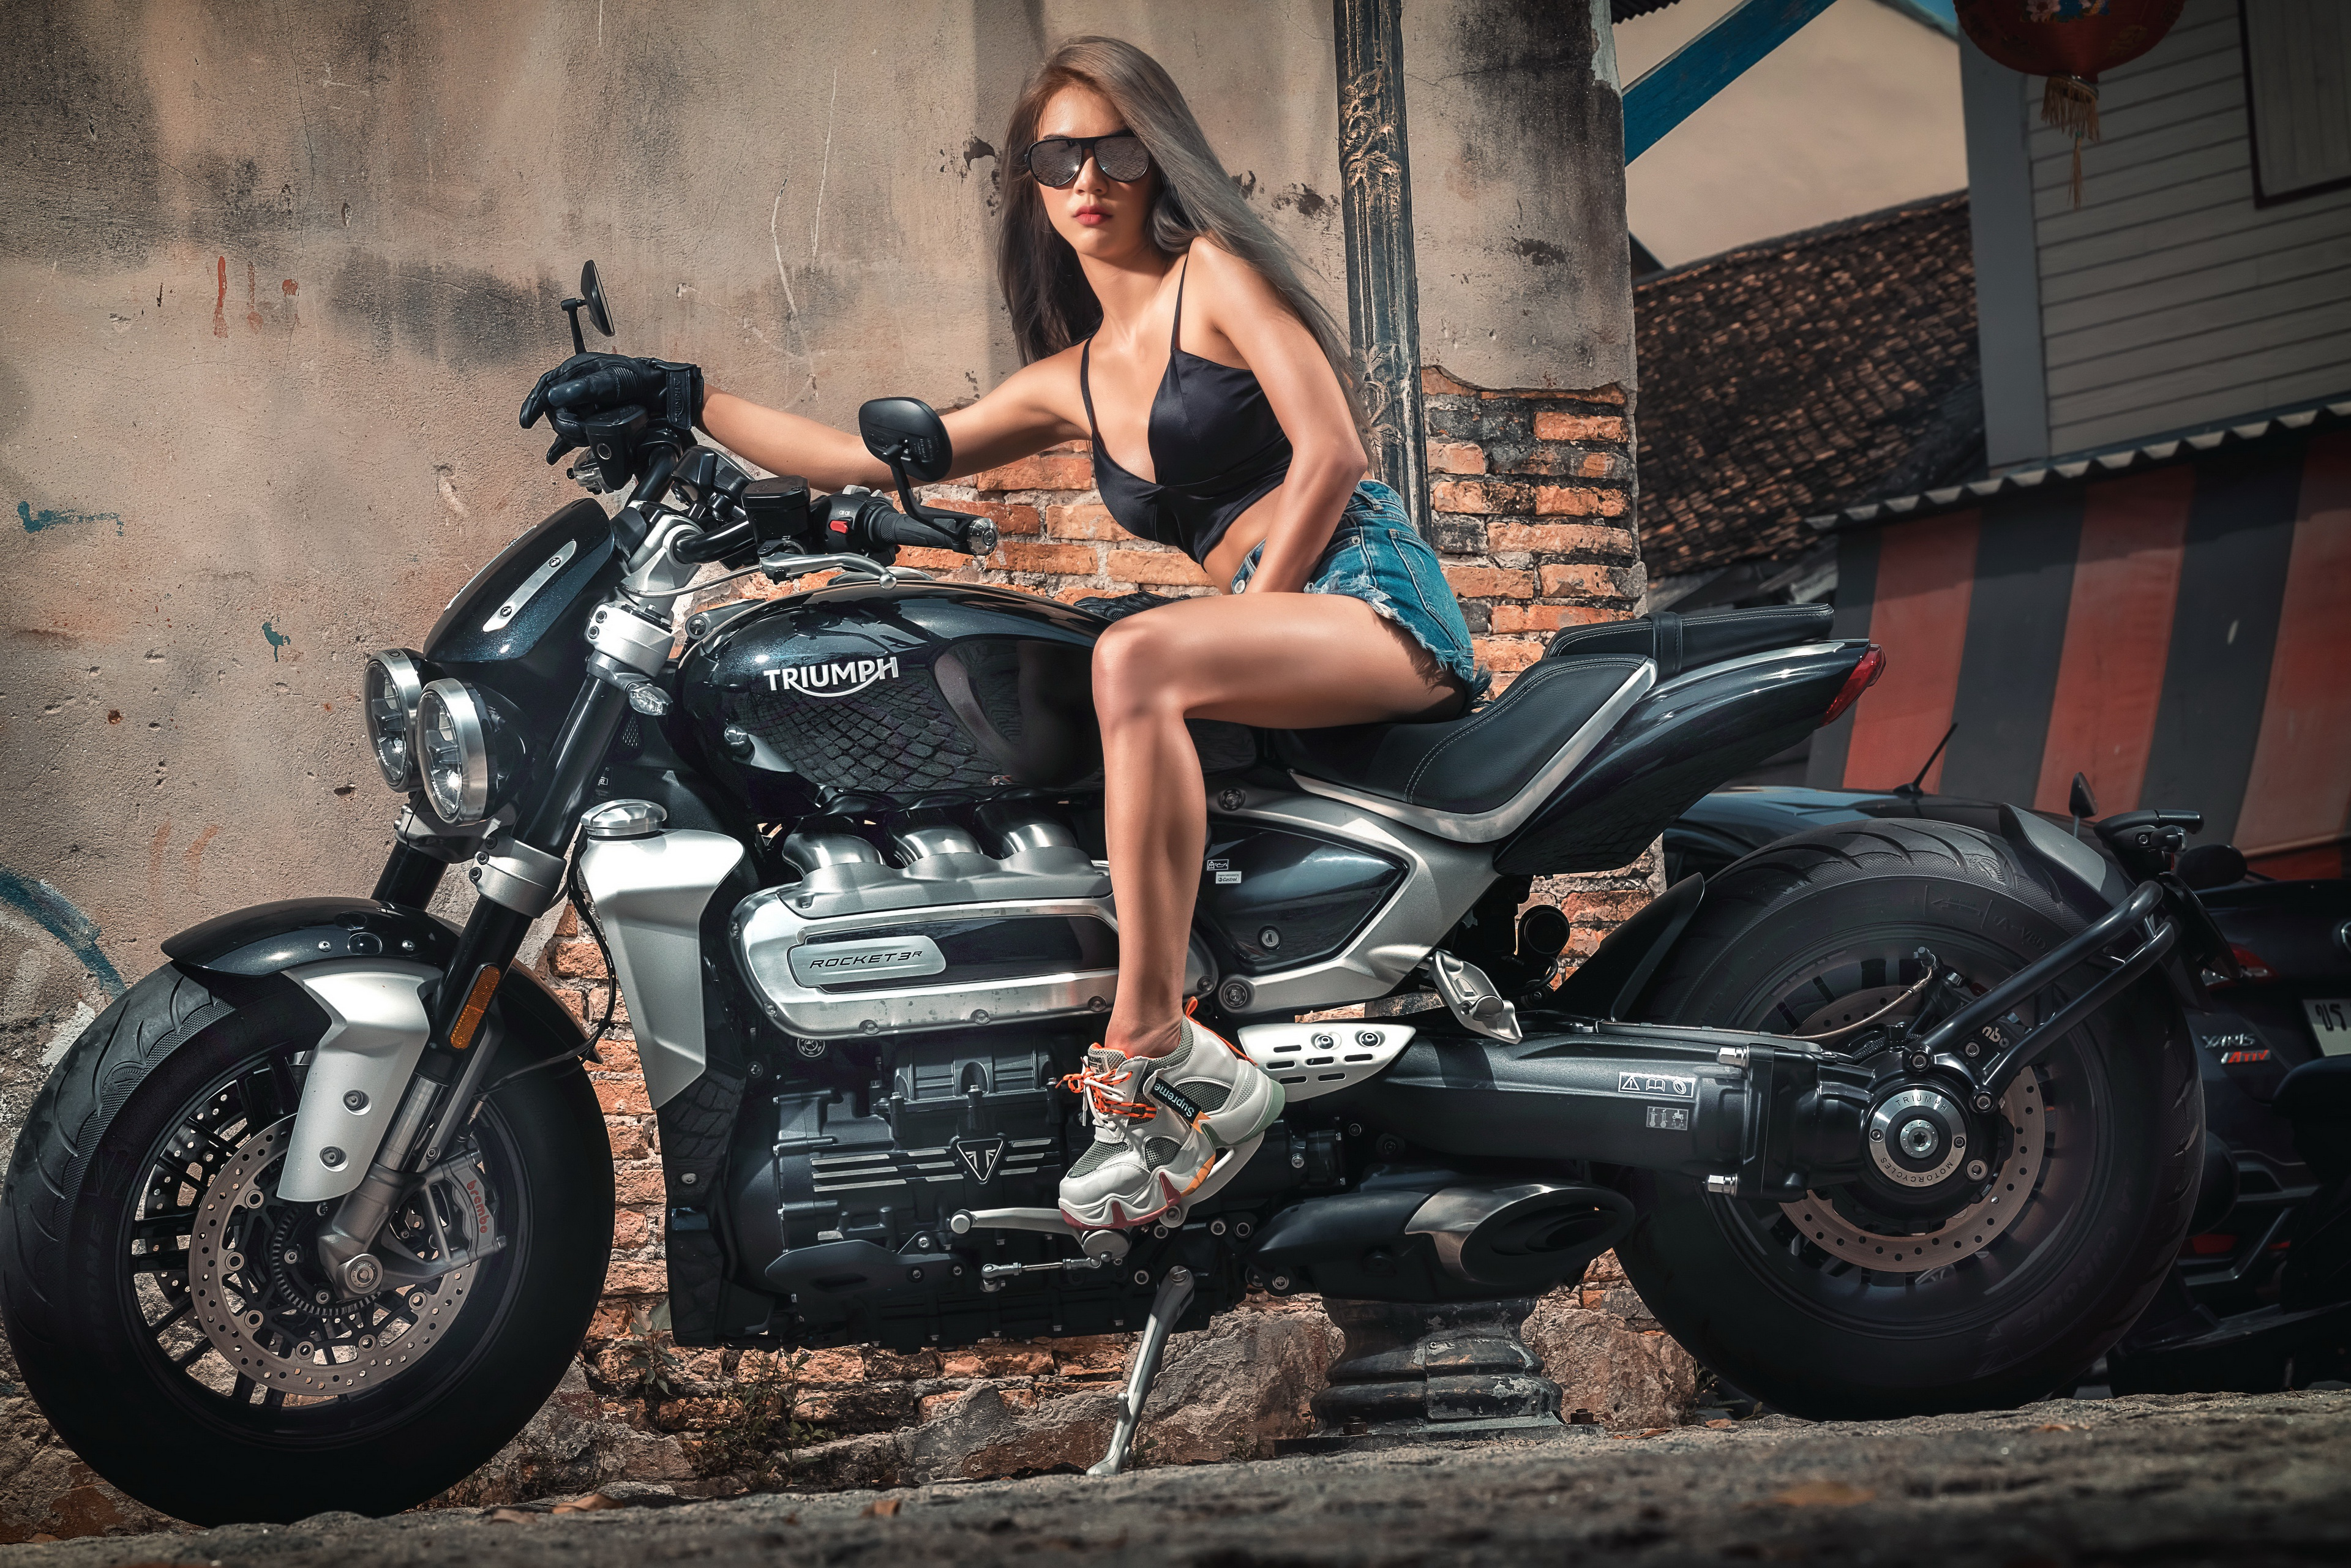 Photos Triumph Motorcycles Ltd Girls motorcycle Asian sit Shorts eyeglasses 3840x2561 Triumph female young woman Motorcycles Asiatic Glasses Sitting